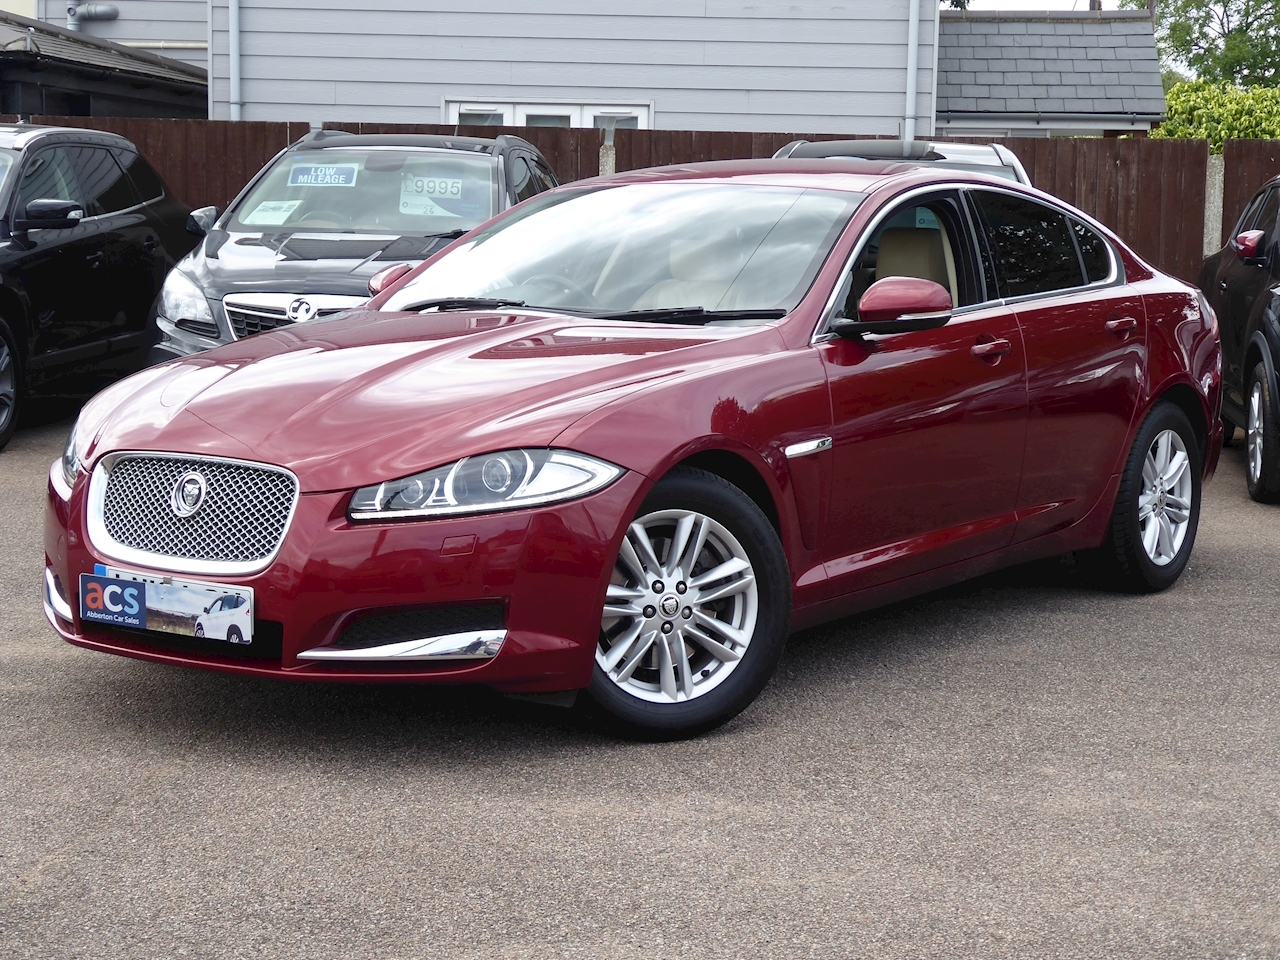 Used Jaguar Xf D Luxury | Abberton Car Sales - Mersea Road